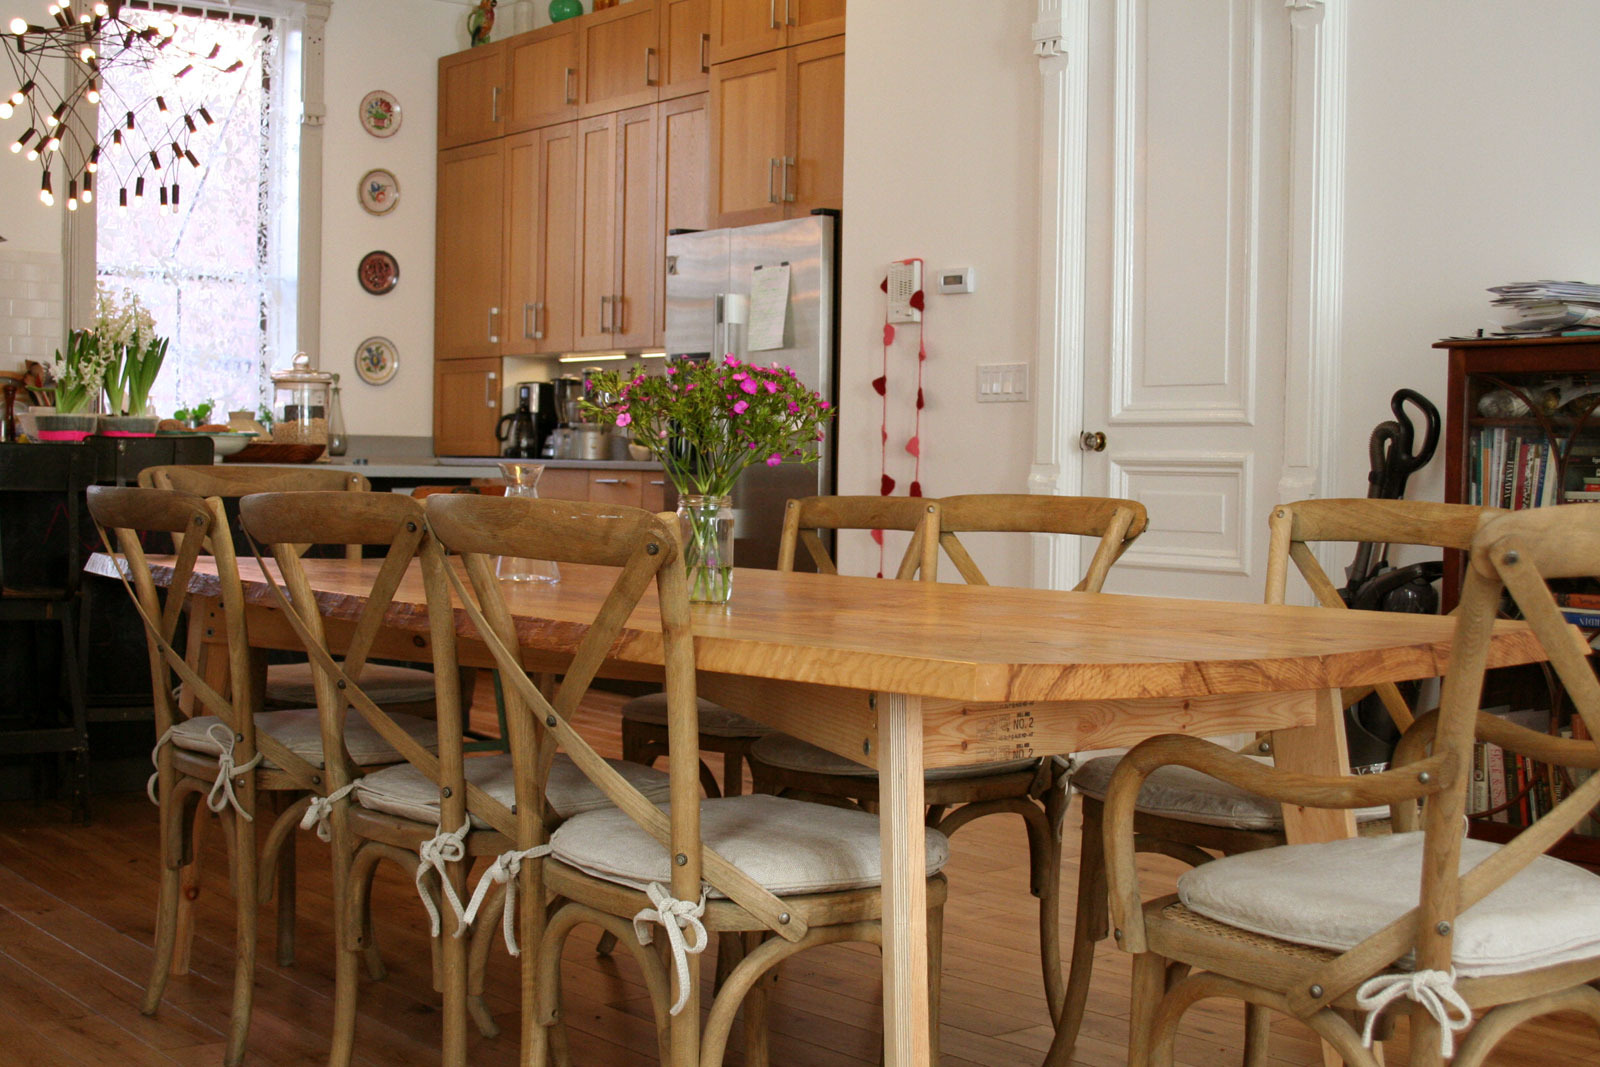 Sophie and Michael's Beautiful 'Discontinued' Oak Kitchen